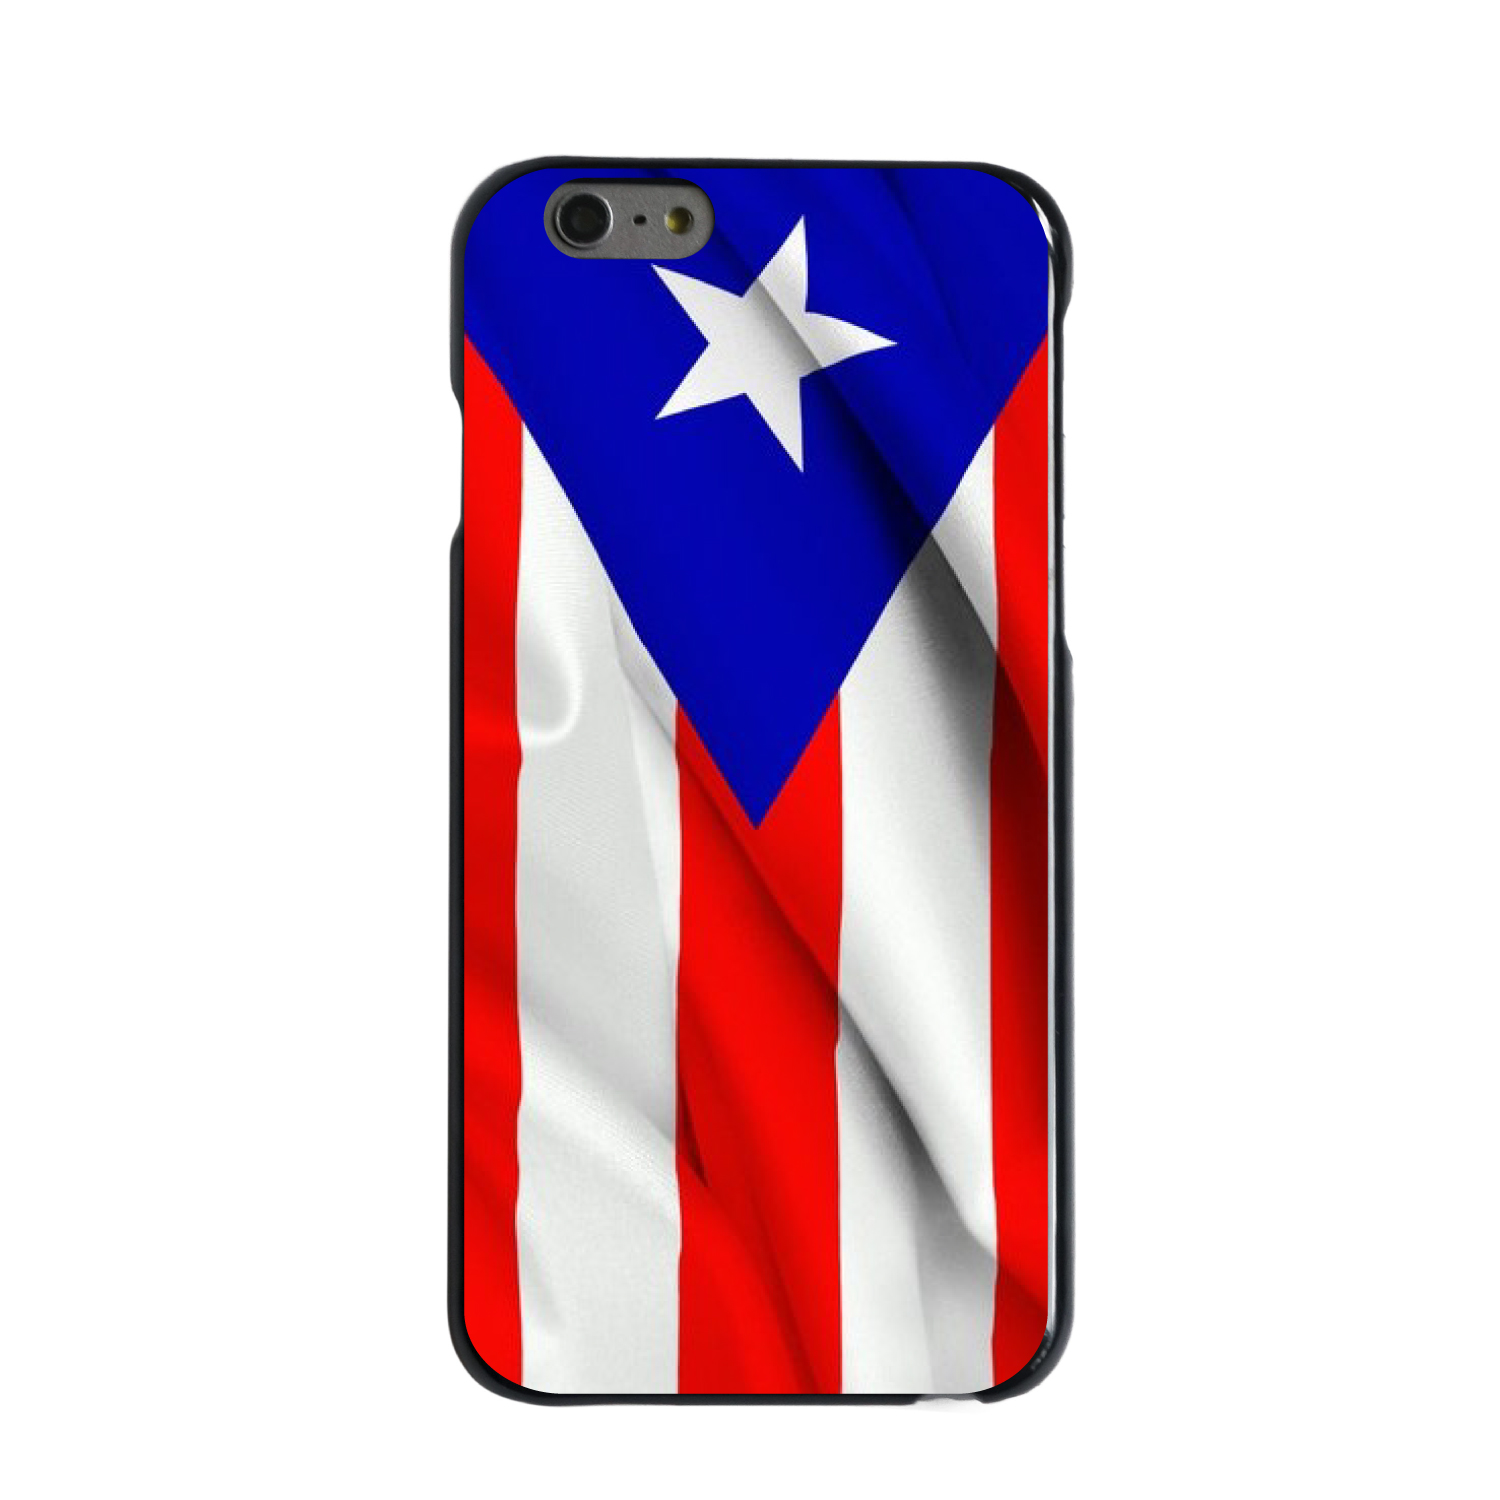 "CUSTOM Black Hard Plastic Snap-On Case for Apple iPhone 6 PLUS / 6S PLUS (5.5"" Screen) - Red White Blue Puerto Rico Flag"